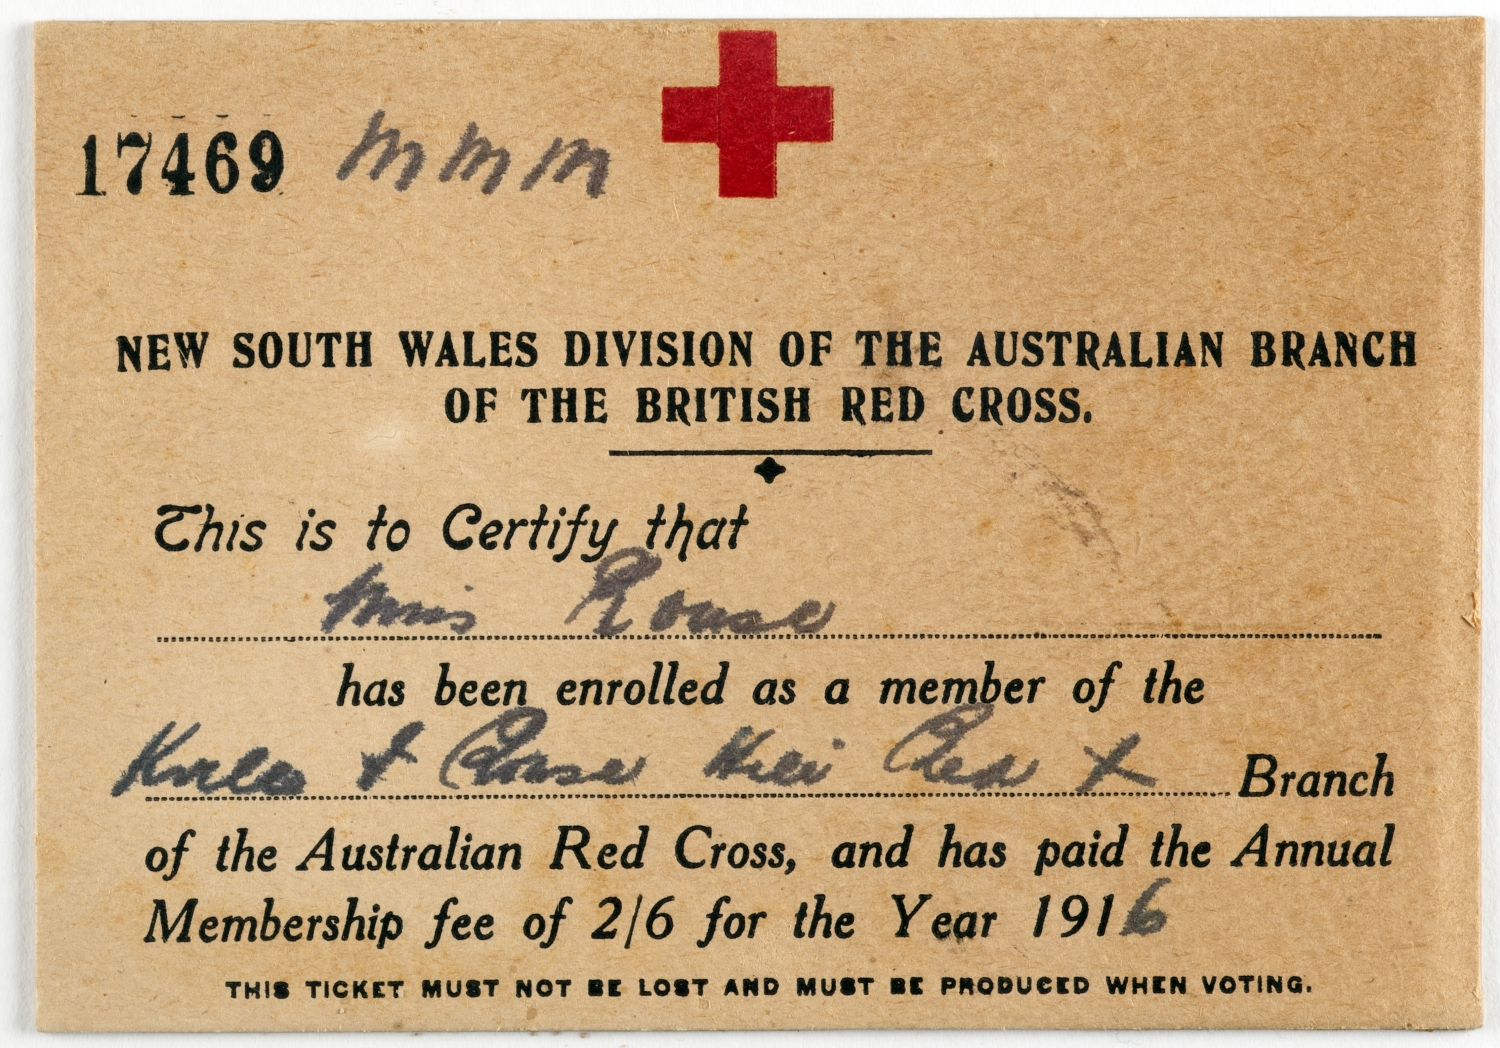 Printed certificate with red cross symbol at top and blanks filled in by hand.